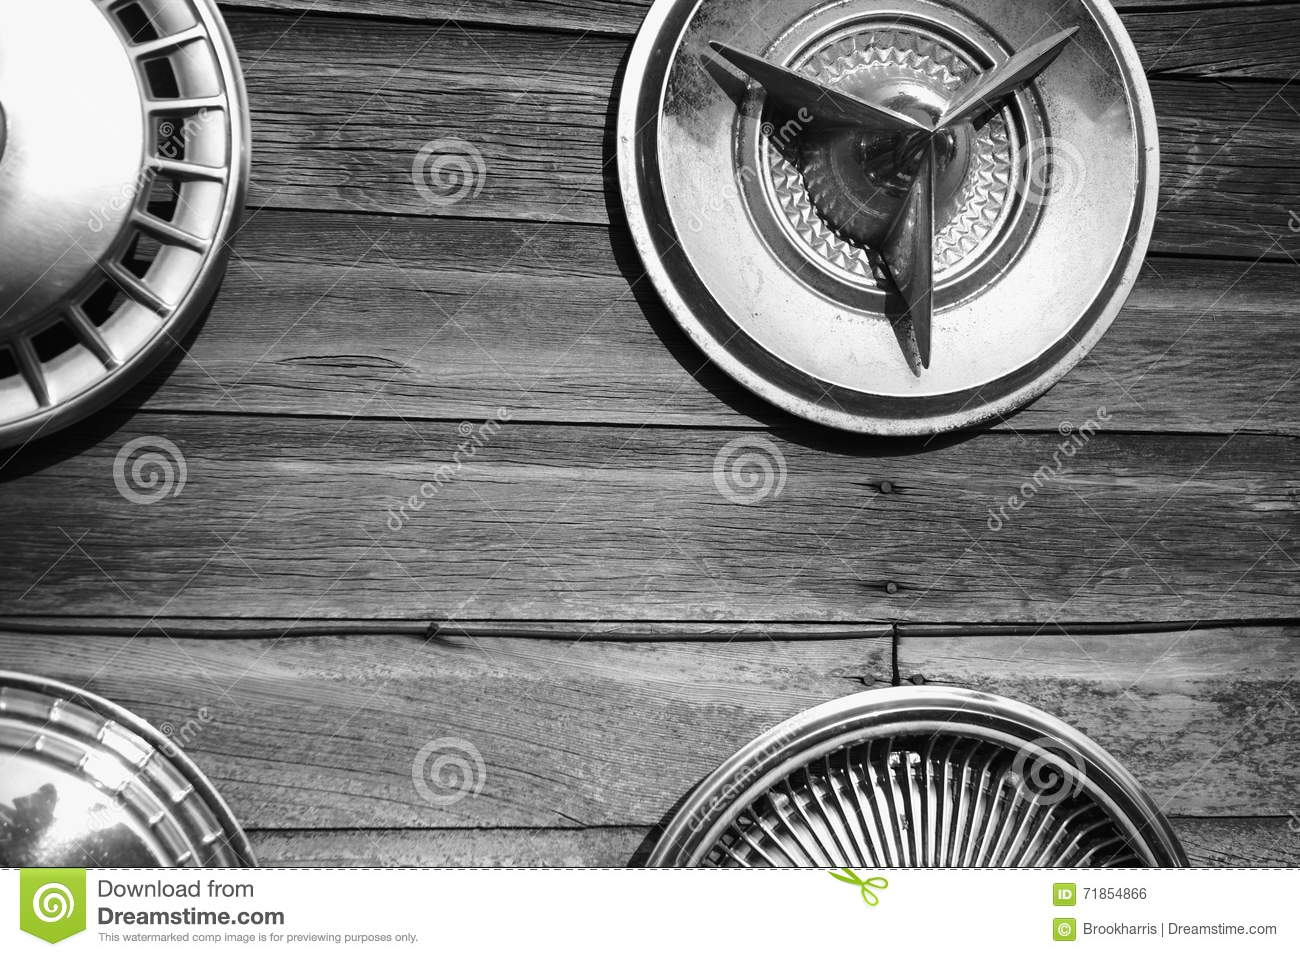 Car hubcaps hanging on aged wood wall